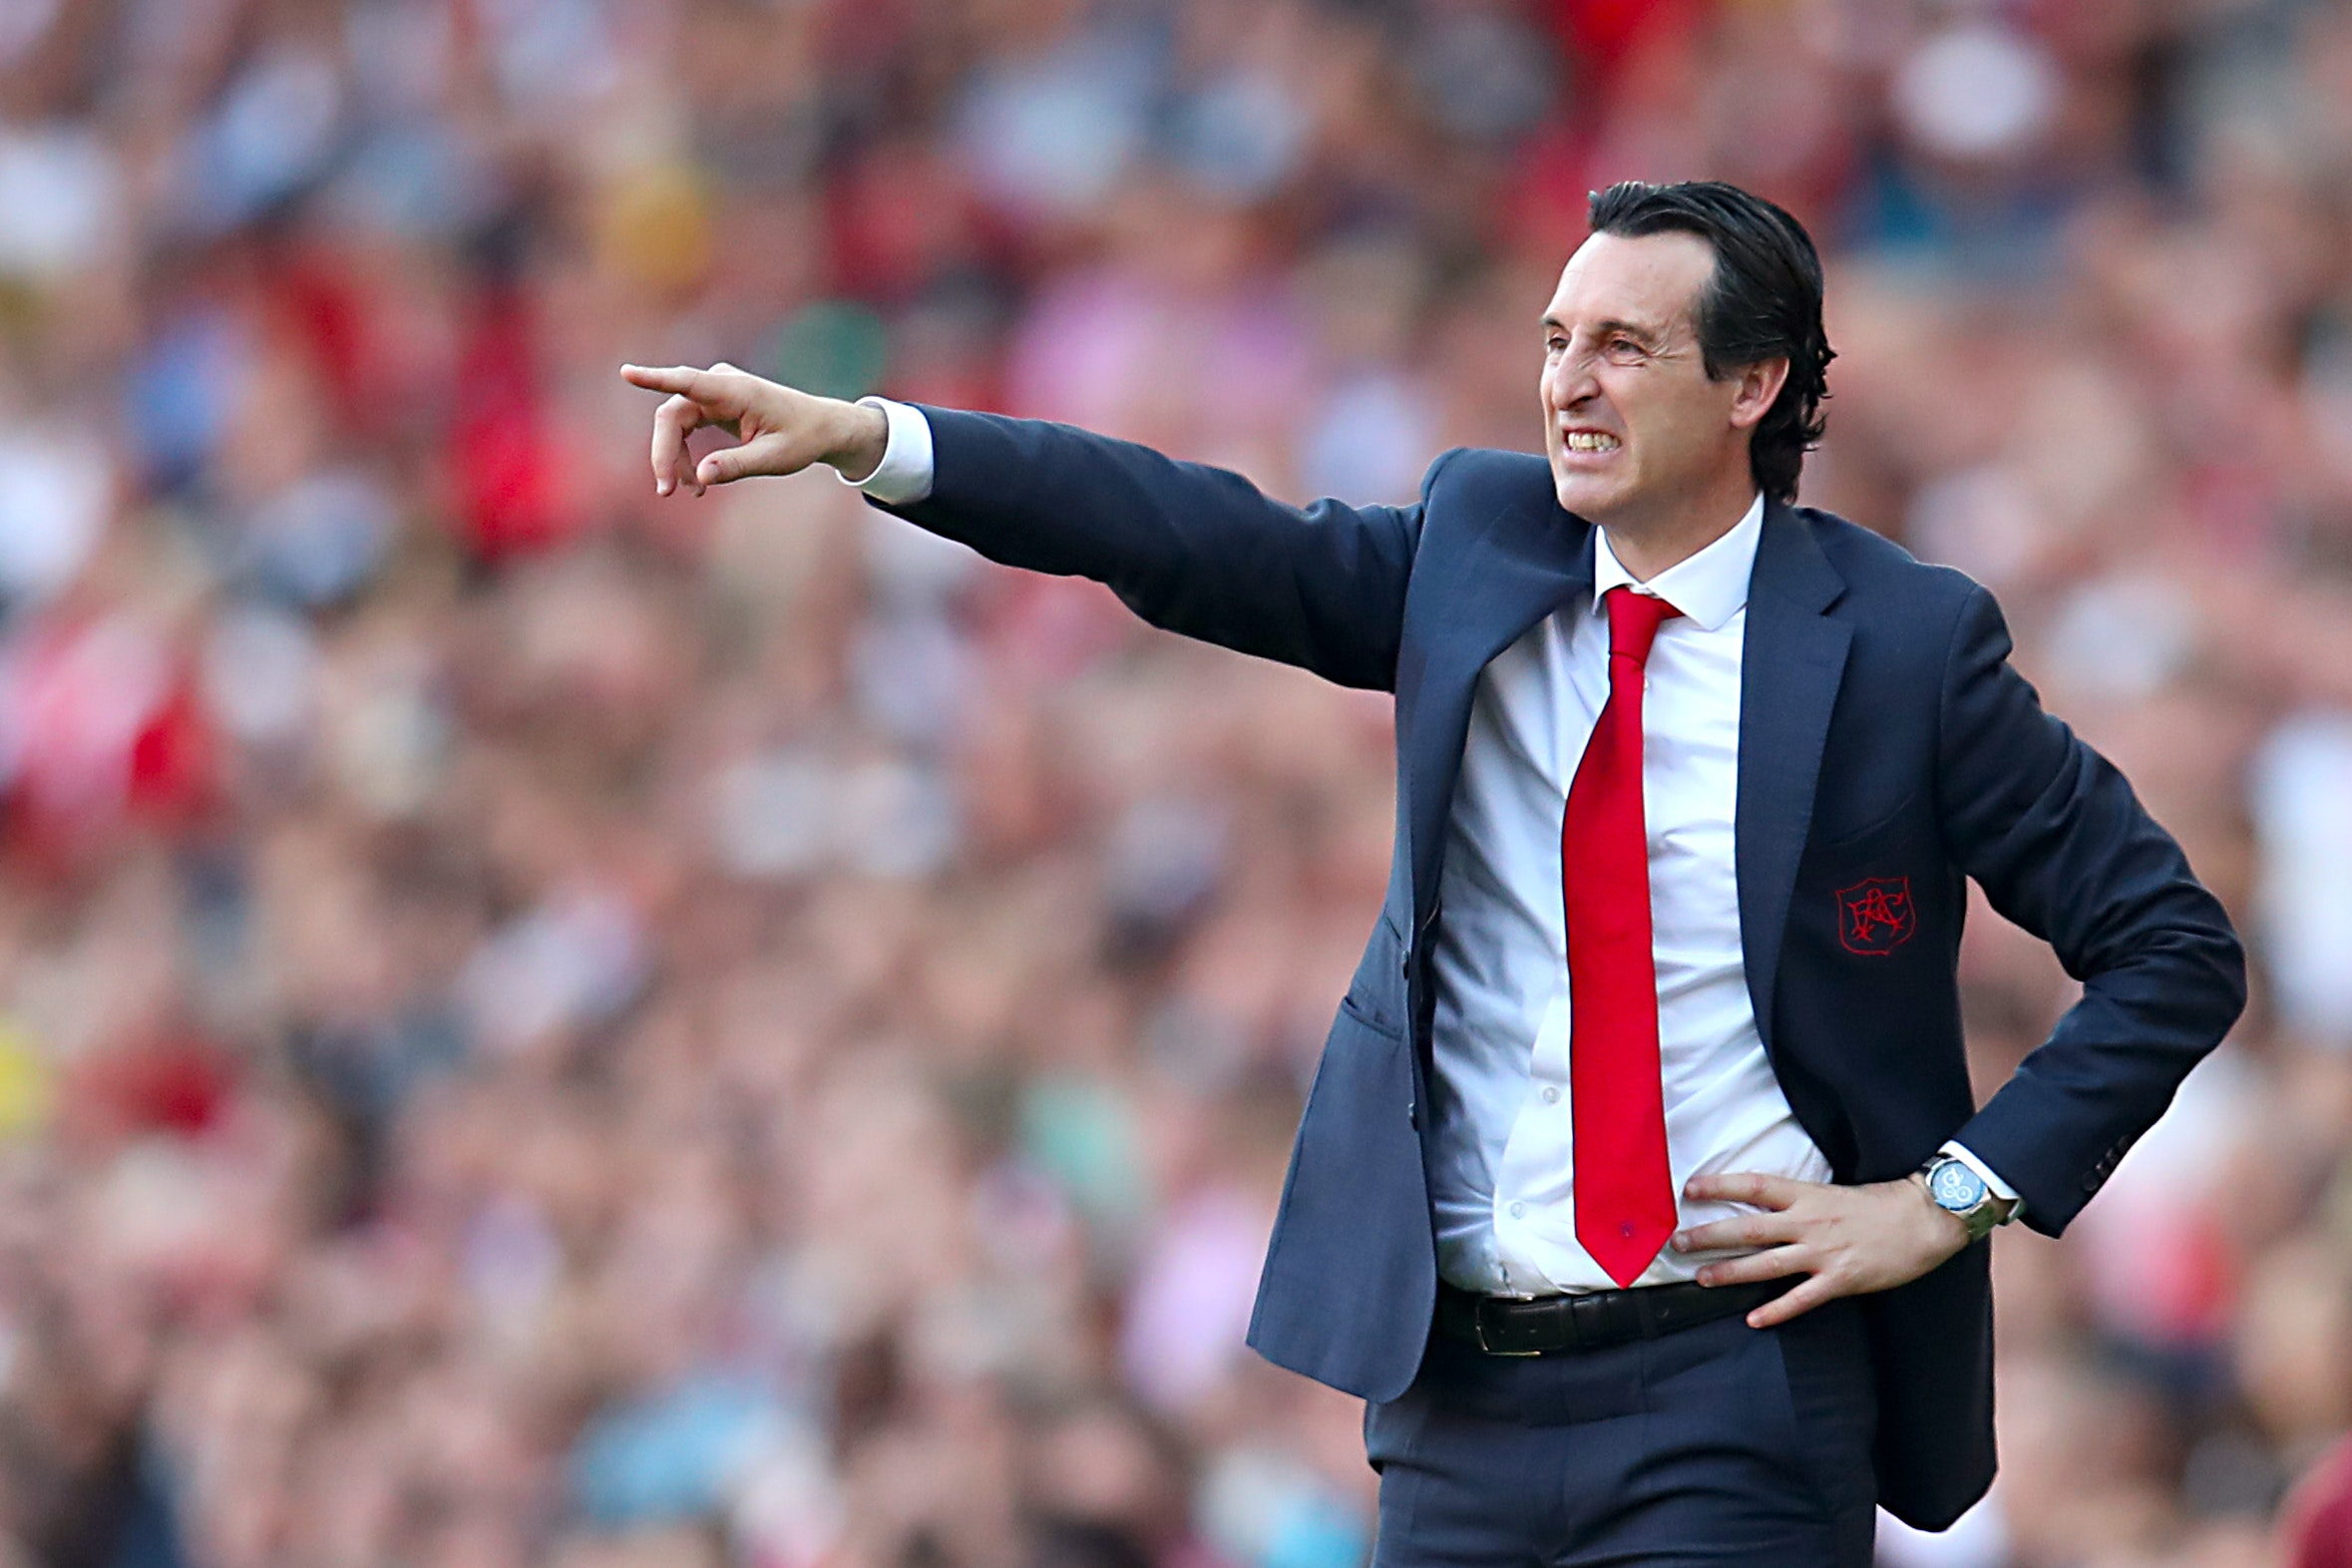 Unai Emery gestures on the touchline during today's game